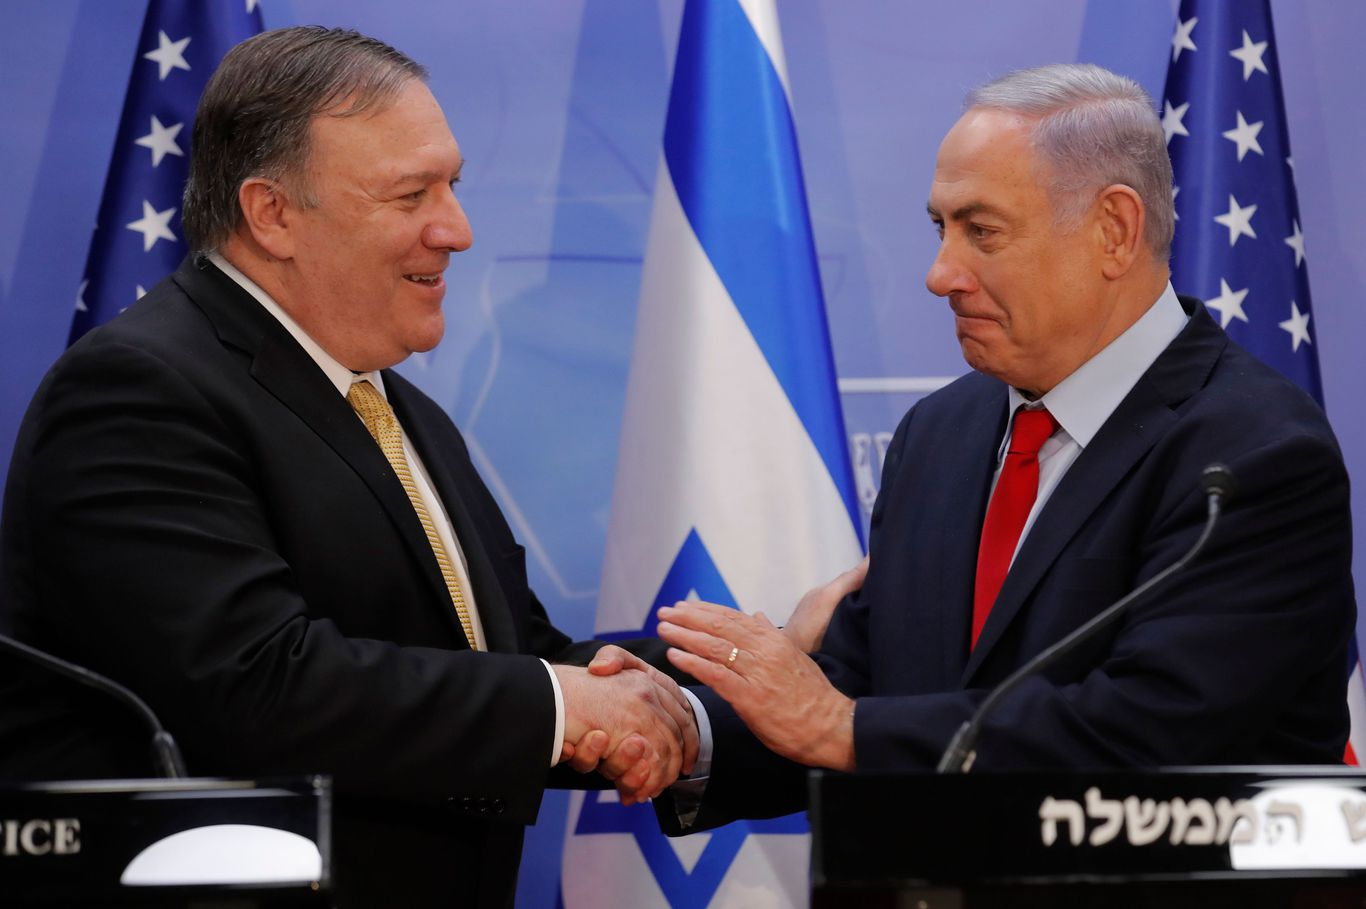 Scoop: Pompeo to make unprecedented visit to West Bank settlement thumbnail